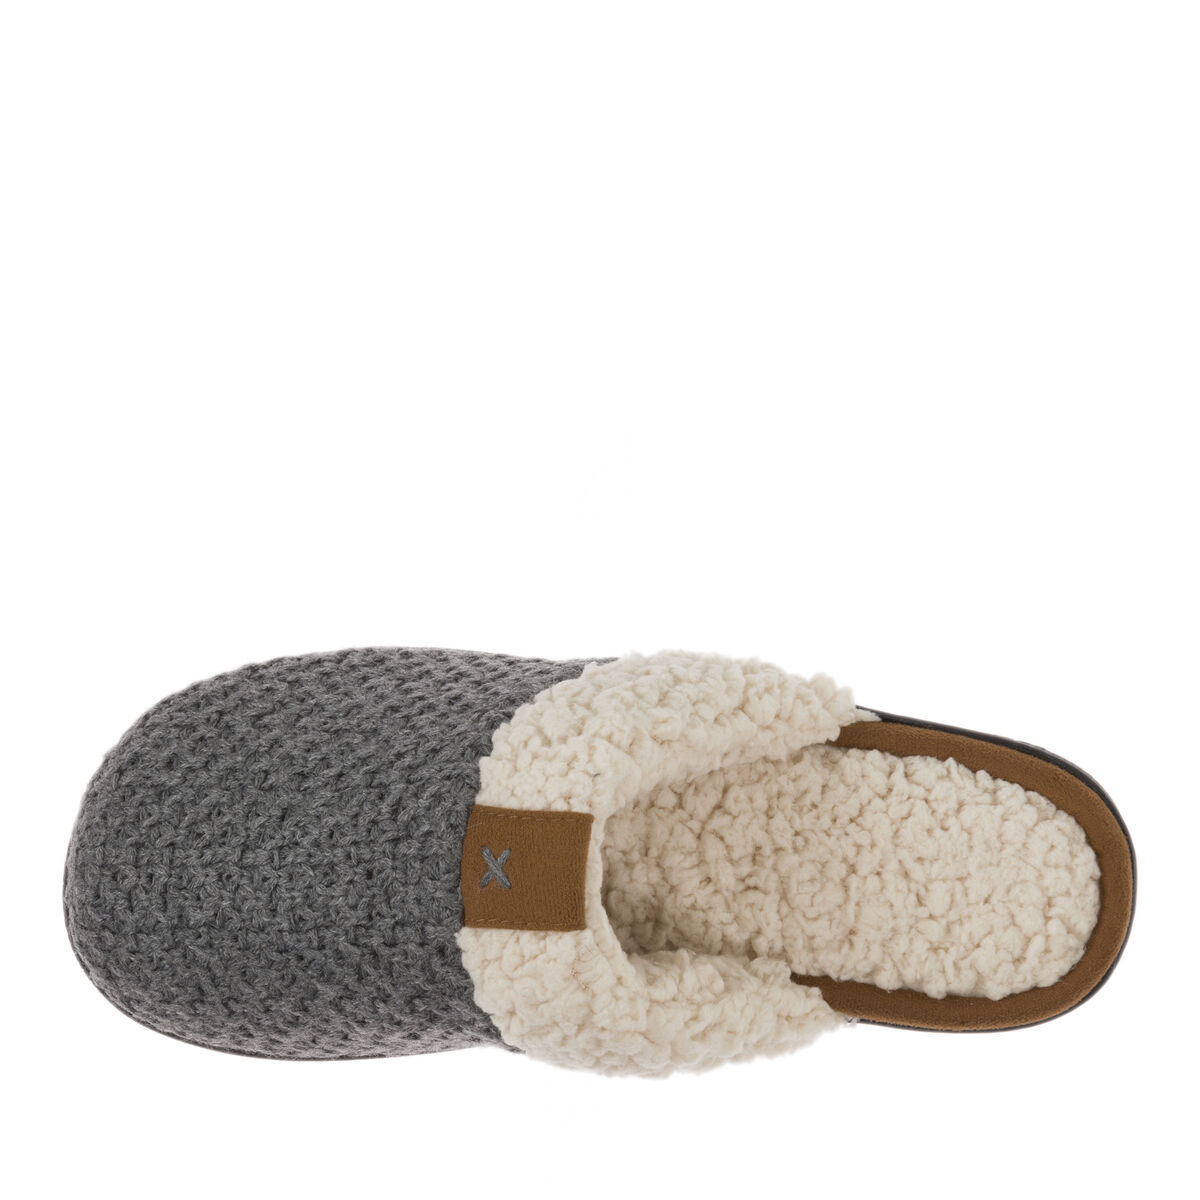 Women's Wide Width Textured Knit Closed Toe Scuff